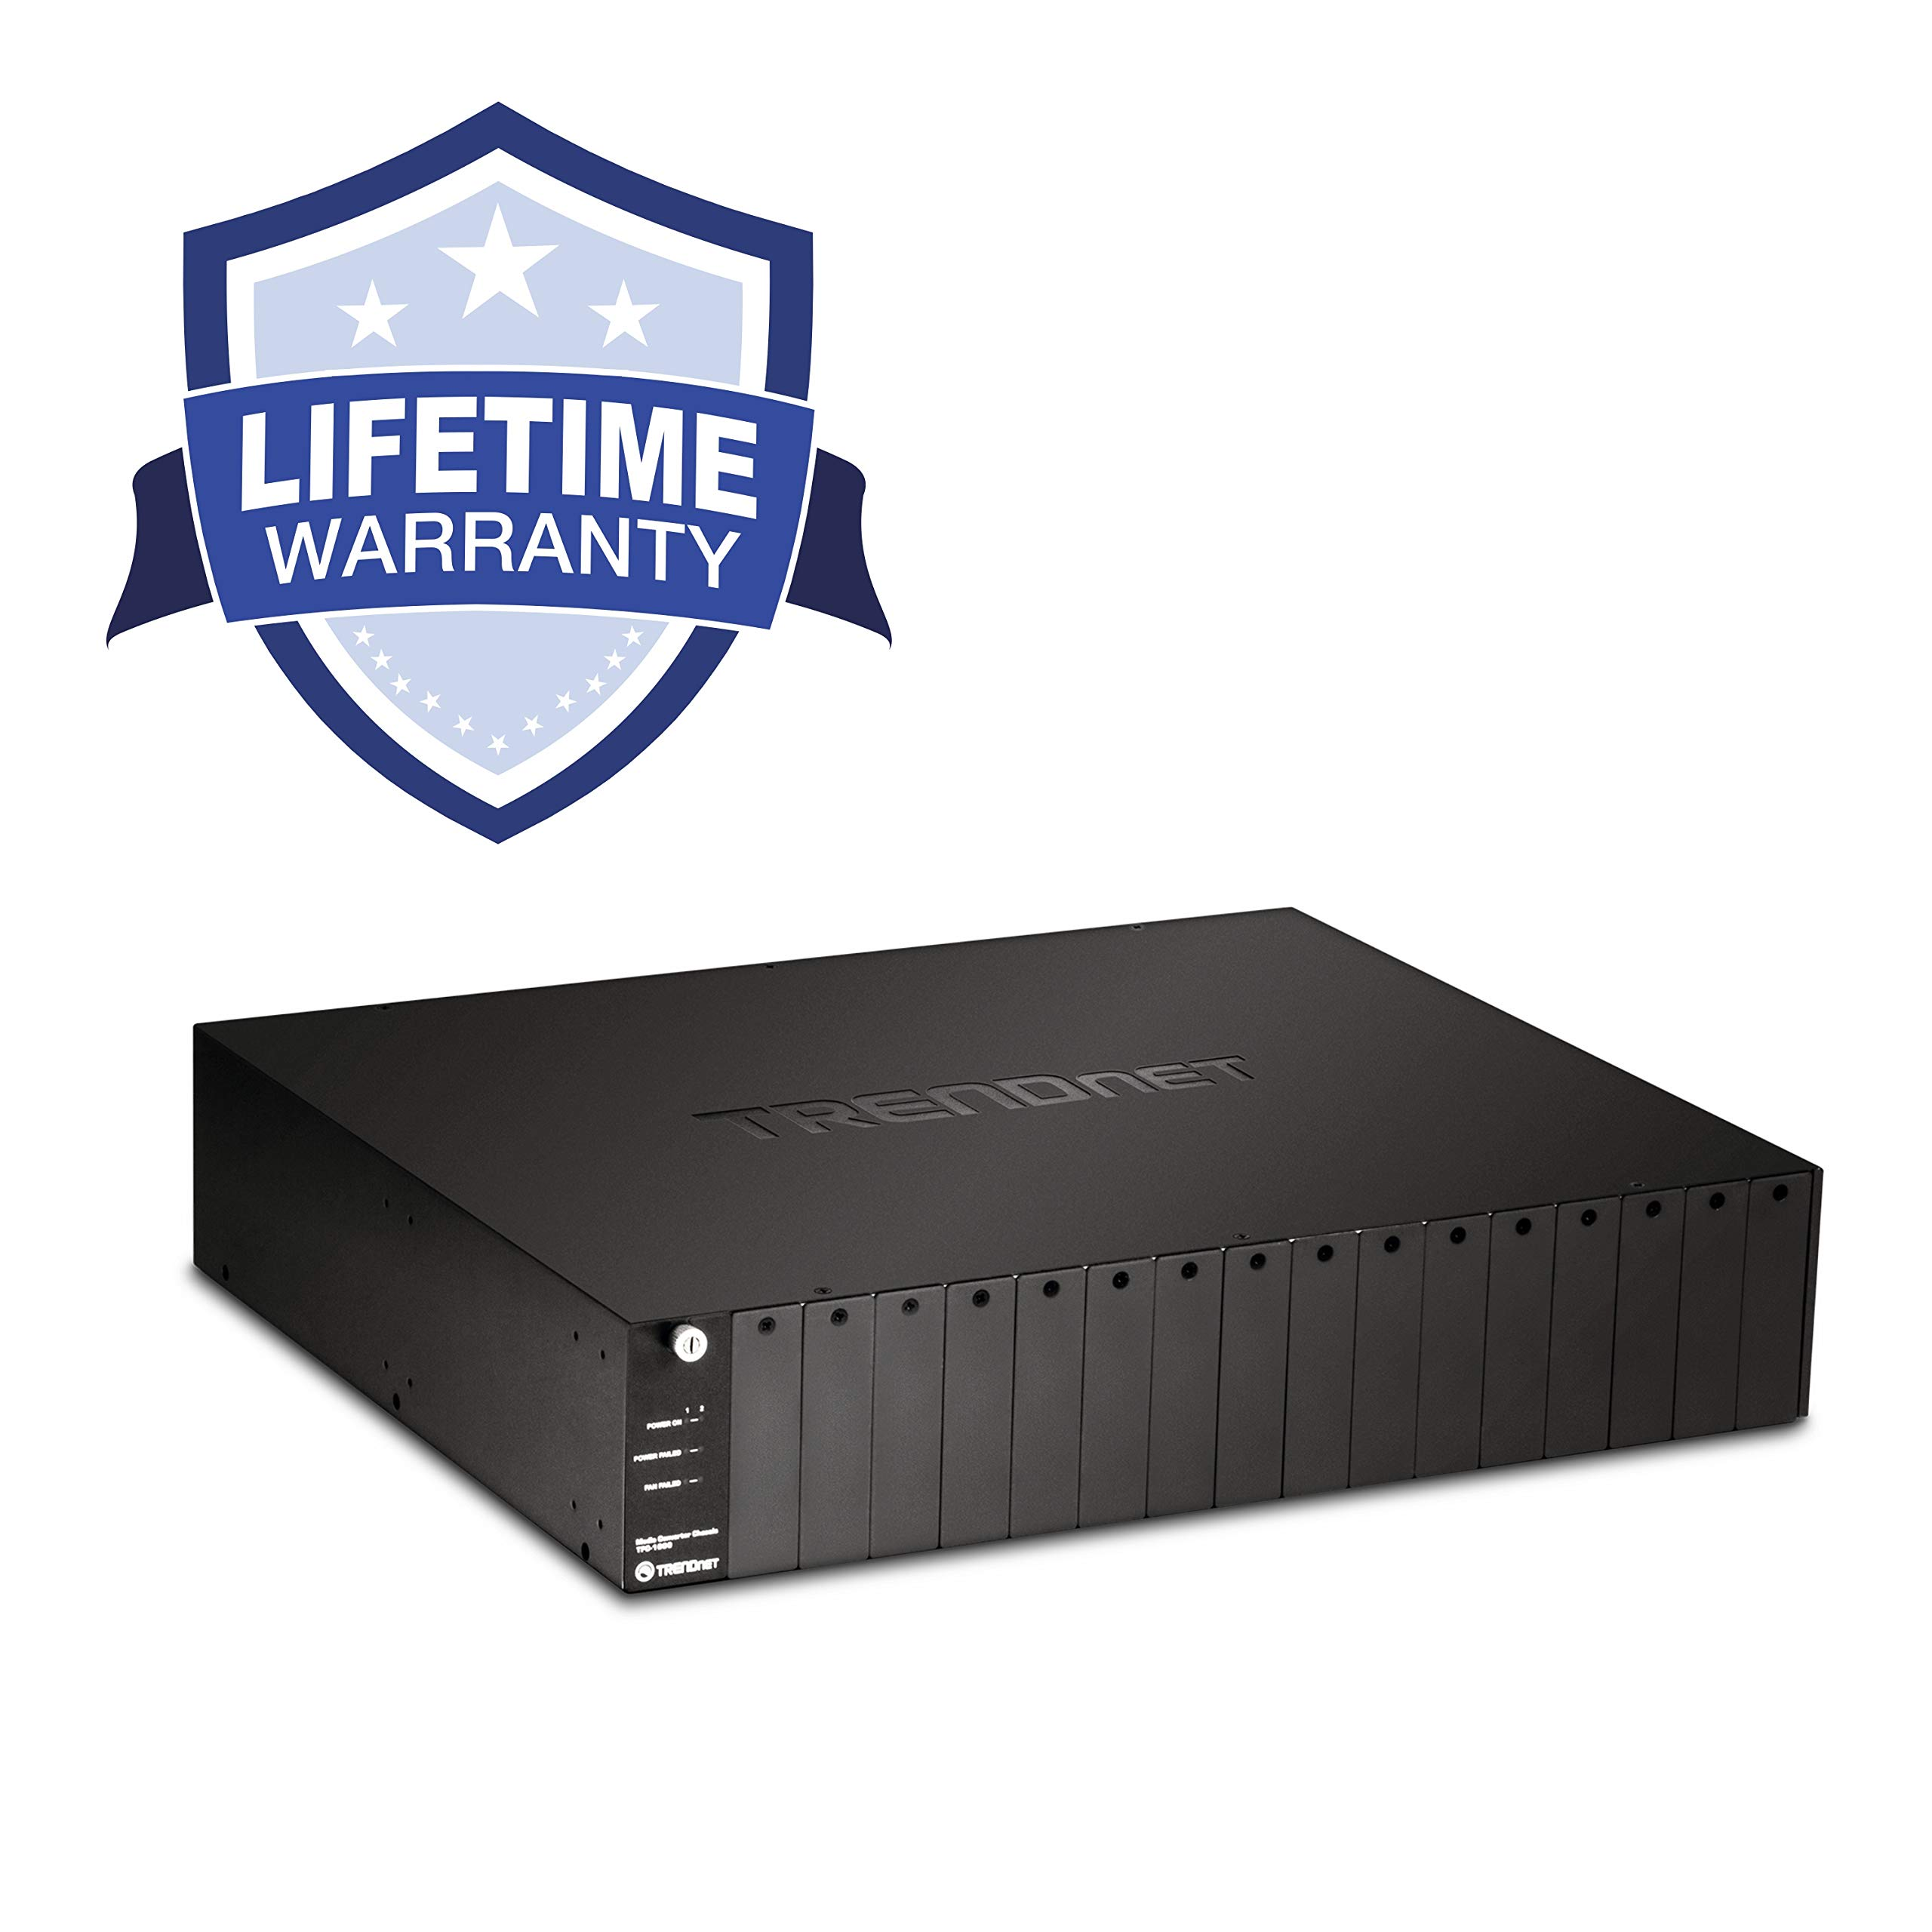 TRENDnet 16-Bay Fiber Converter Chassis System, Hot Swappable, Housing for up to 16 TFC Series Media Converters, Fast Ethernet RJ45, RS-232, SNMP Management Module, Lifetime Protection, TFC-1600 by TRENDnet